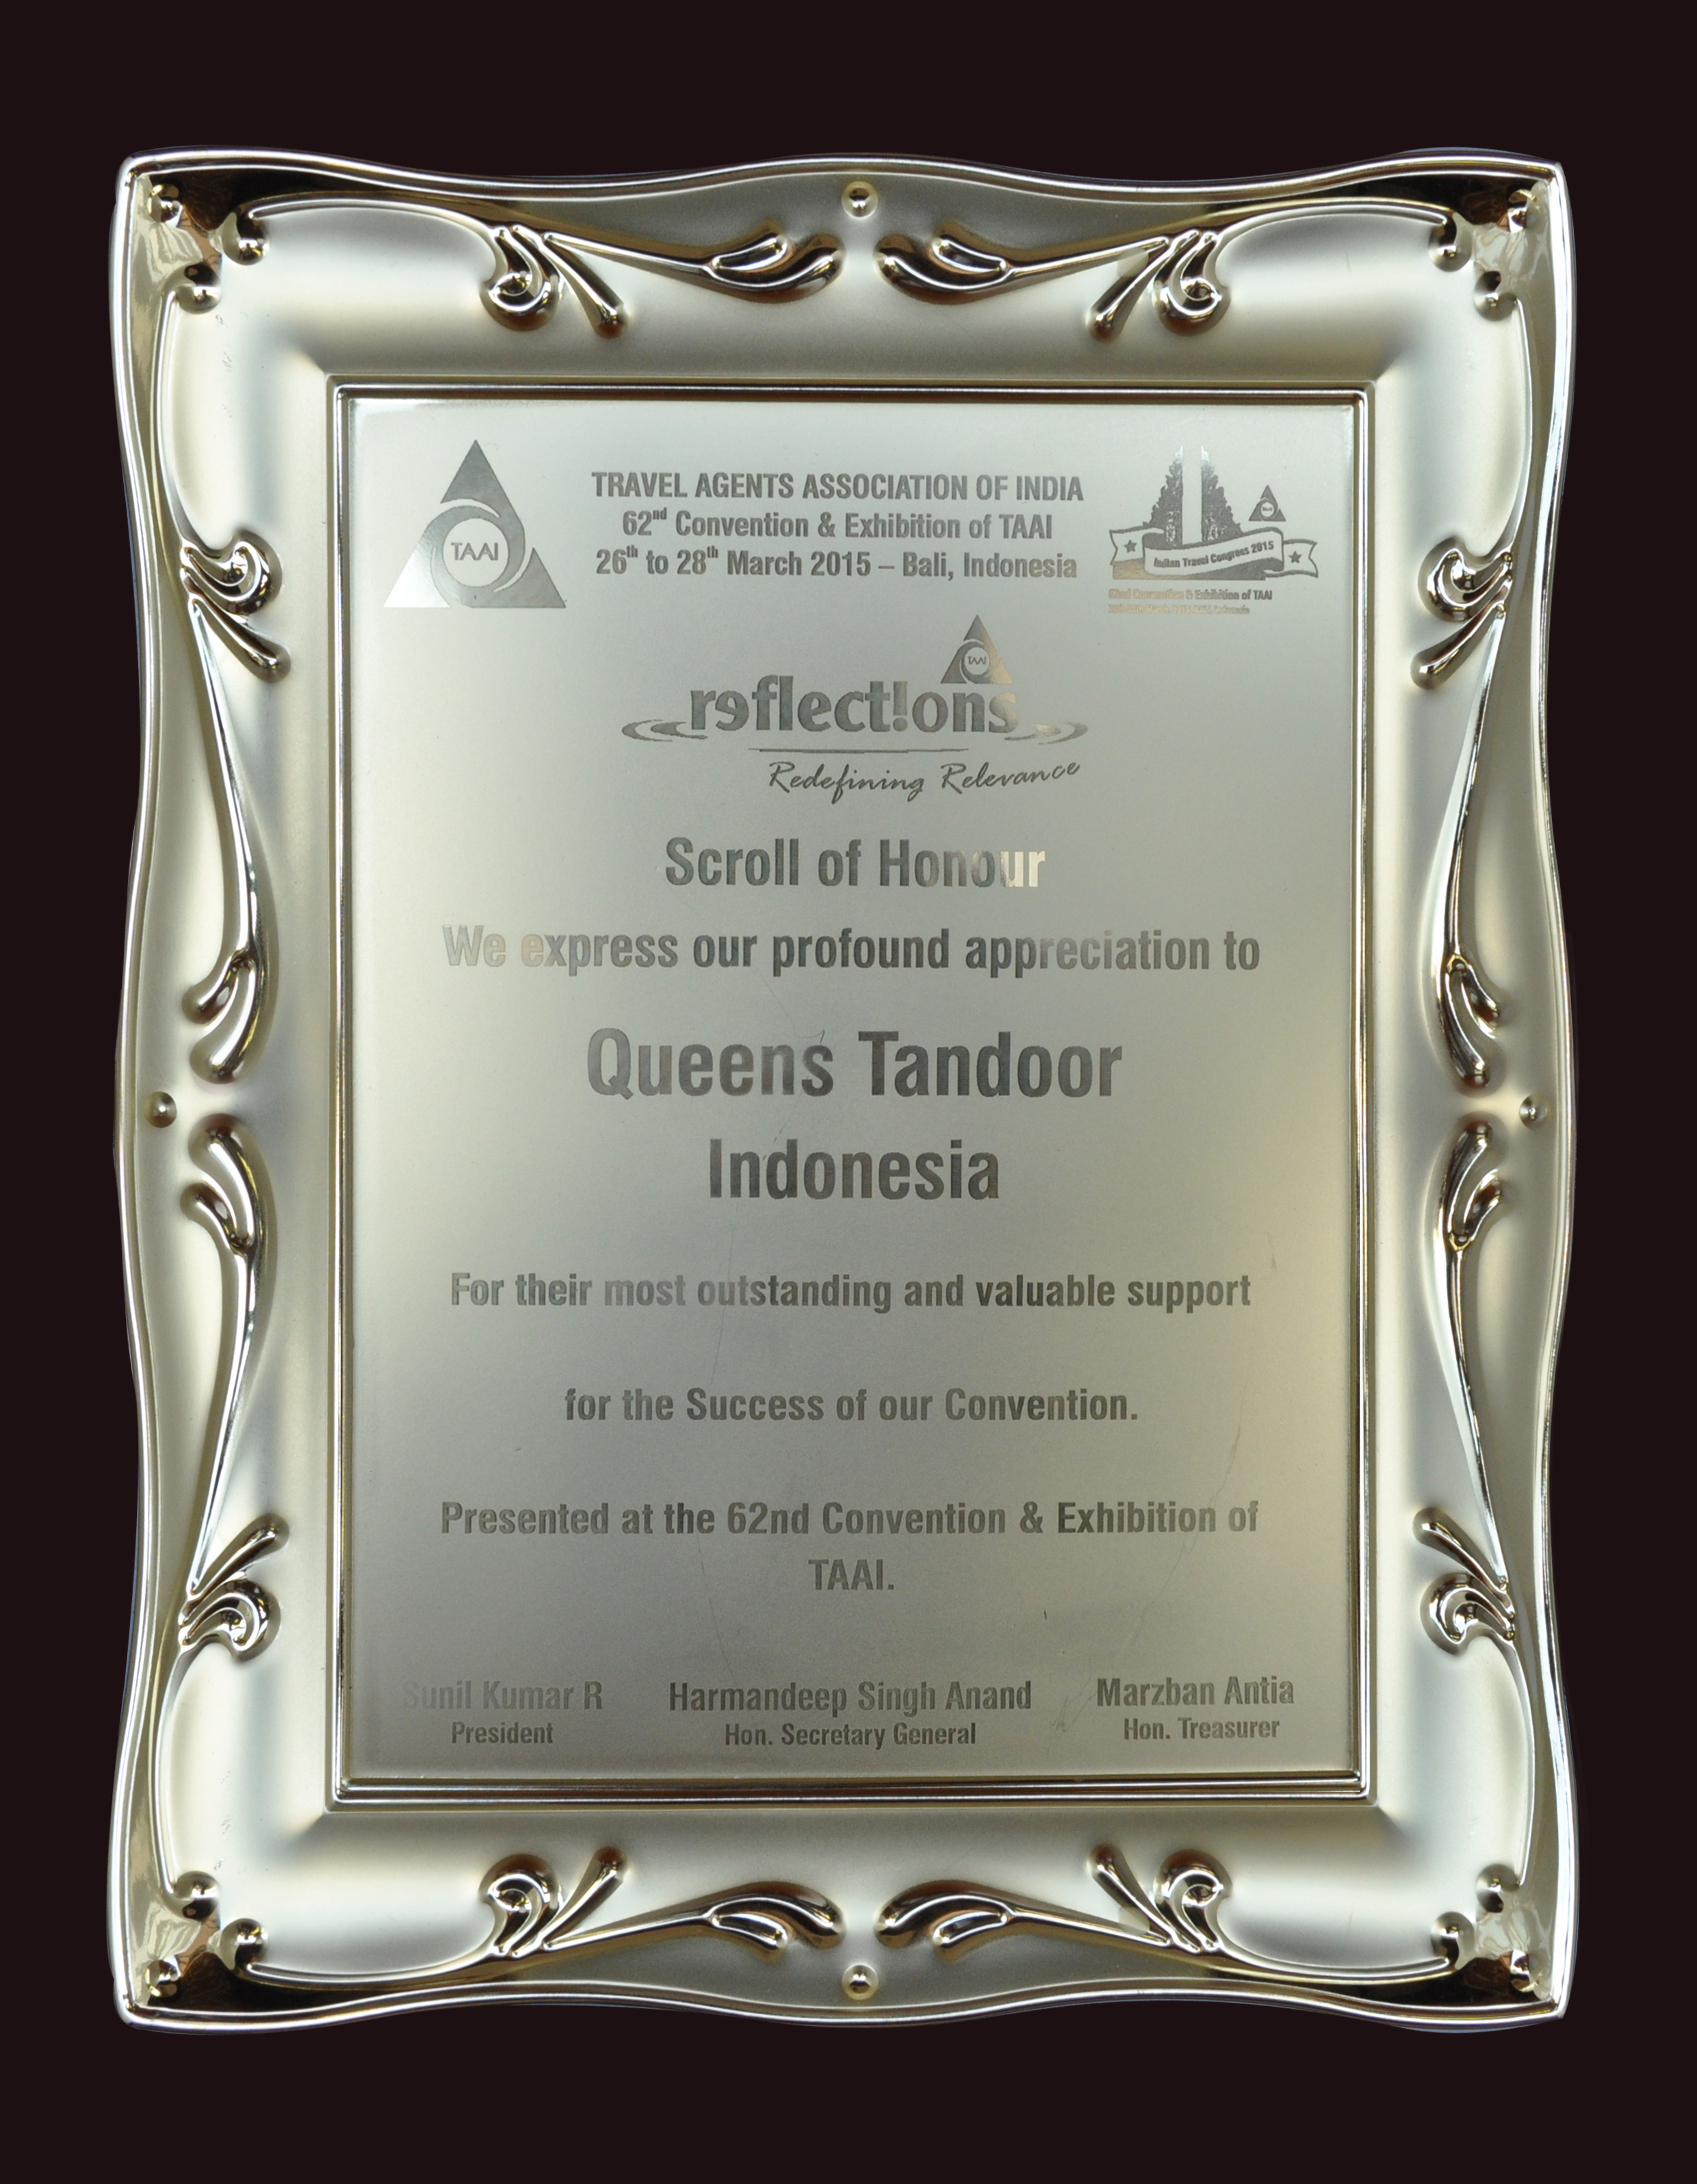 Appreciation for Supoort Queens Tandoor Indonesia from TAAI 2015